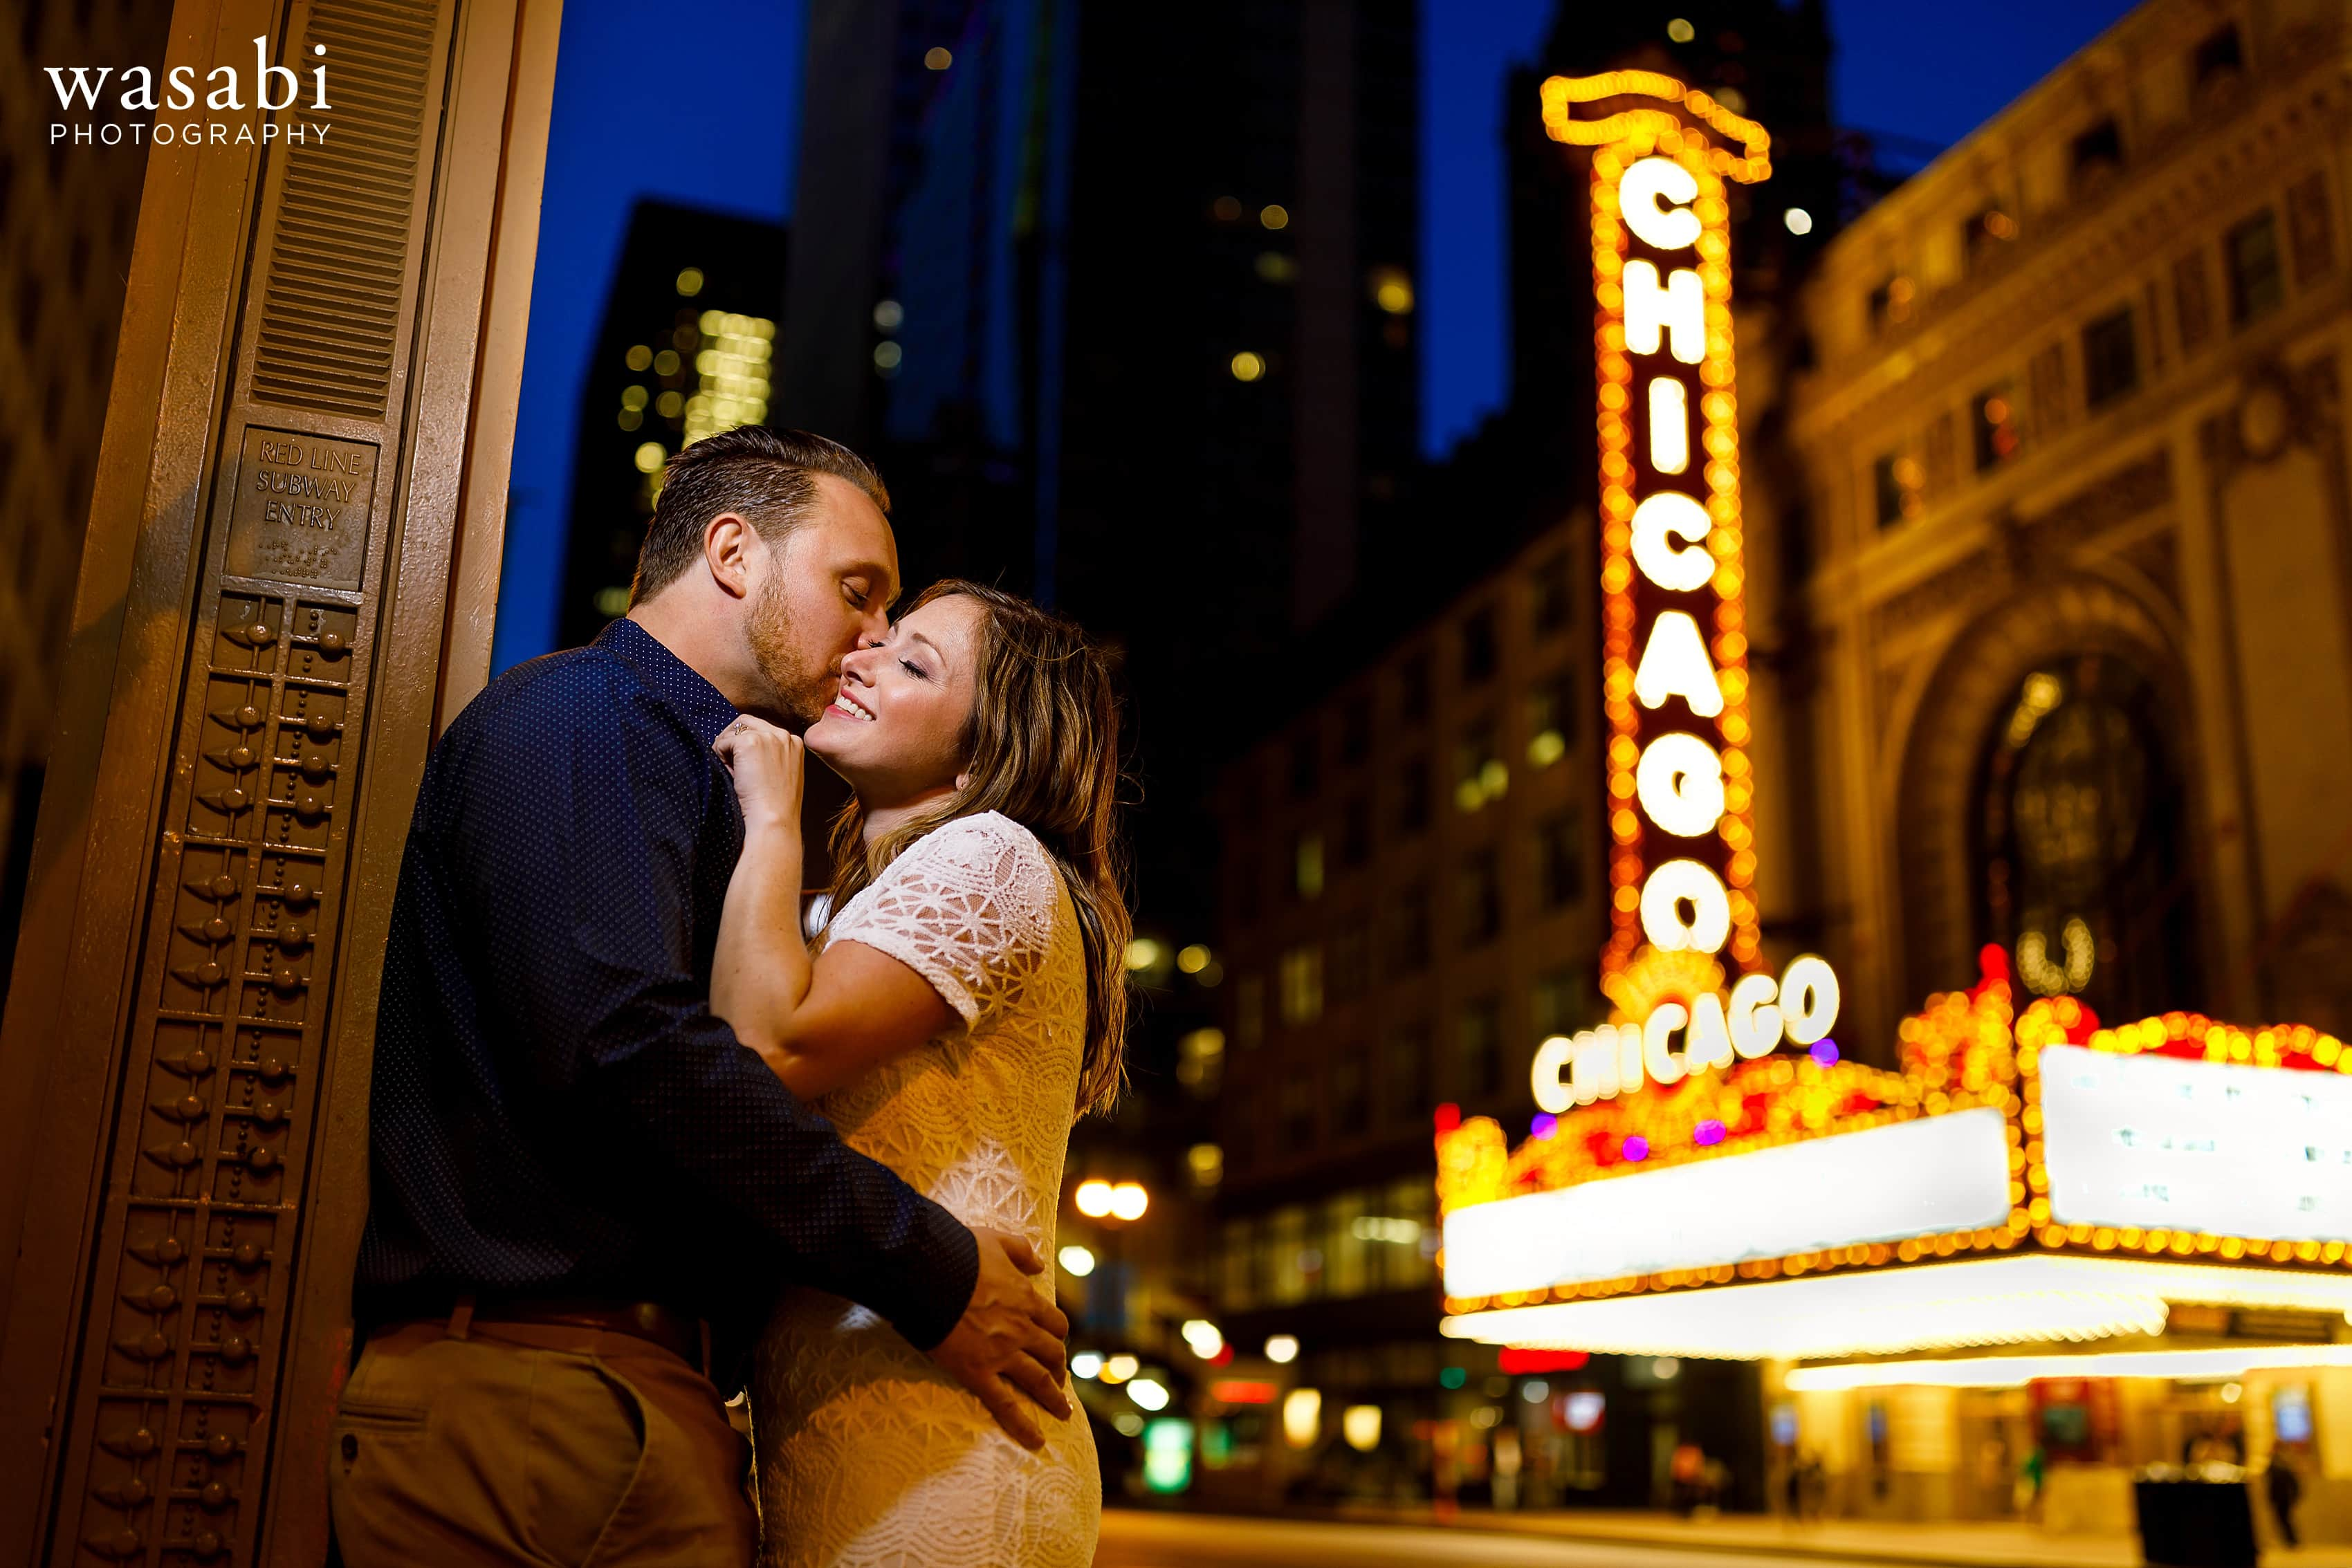 Couple poses at Red Line entrance in front of the iconic Chicago Theatre sign on State Street in Chicago